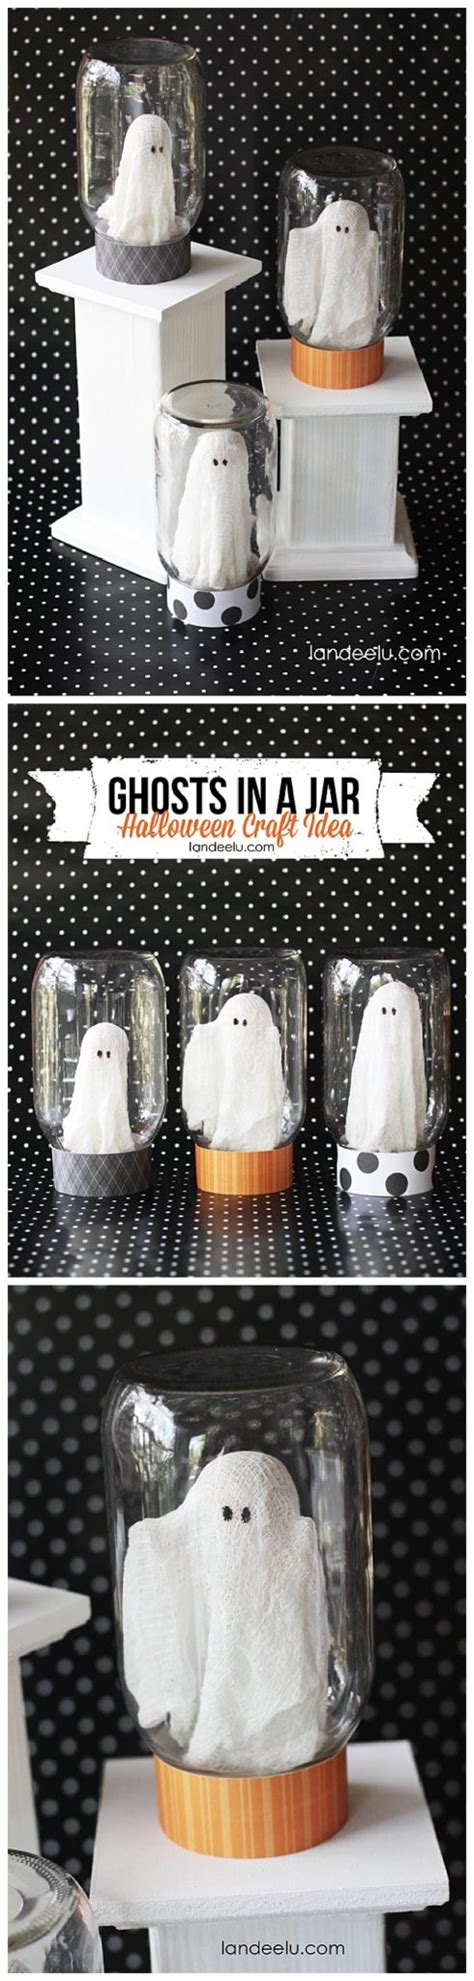 halloween decorations spooktacular halloween diys handmade crafts